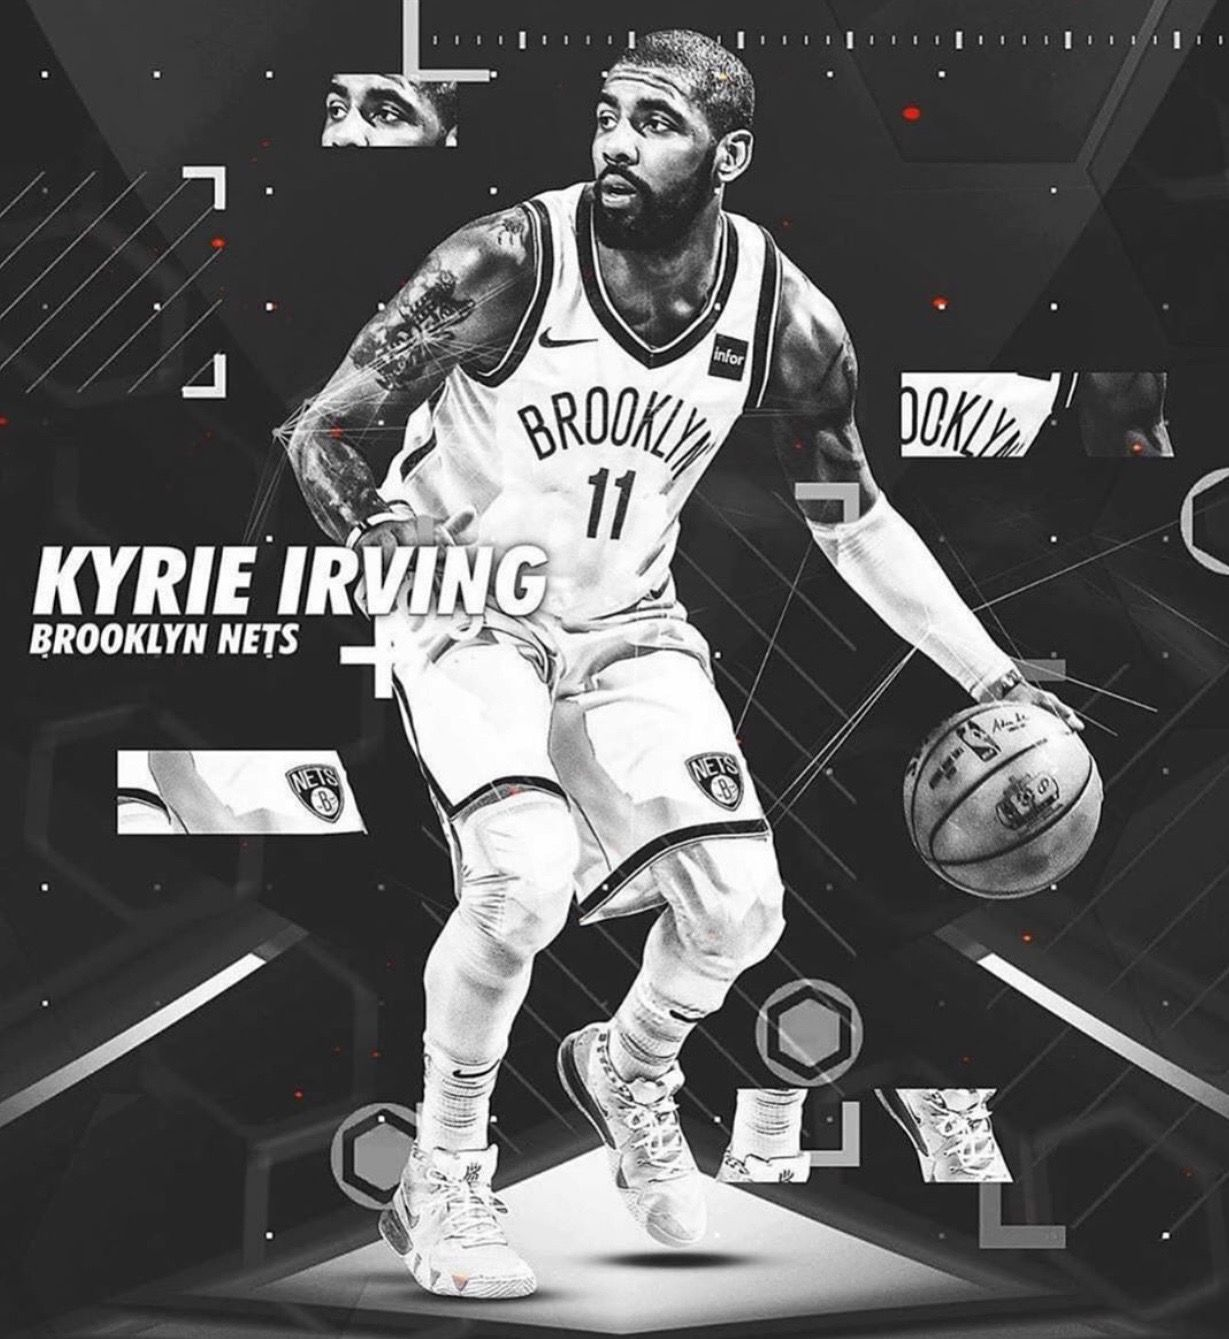 Kyrie Irving Nets Wallpapers Top Free Kyrie Irving Nets